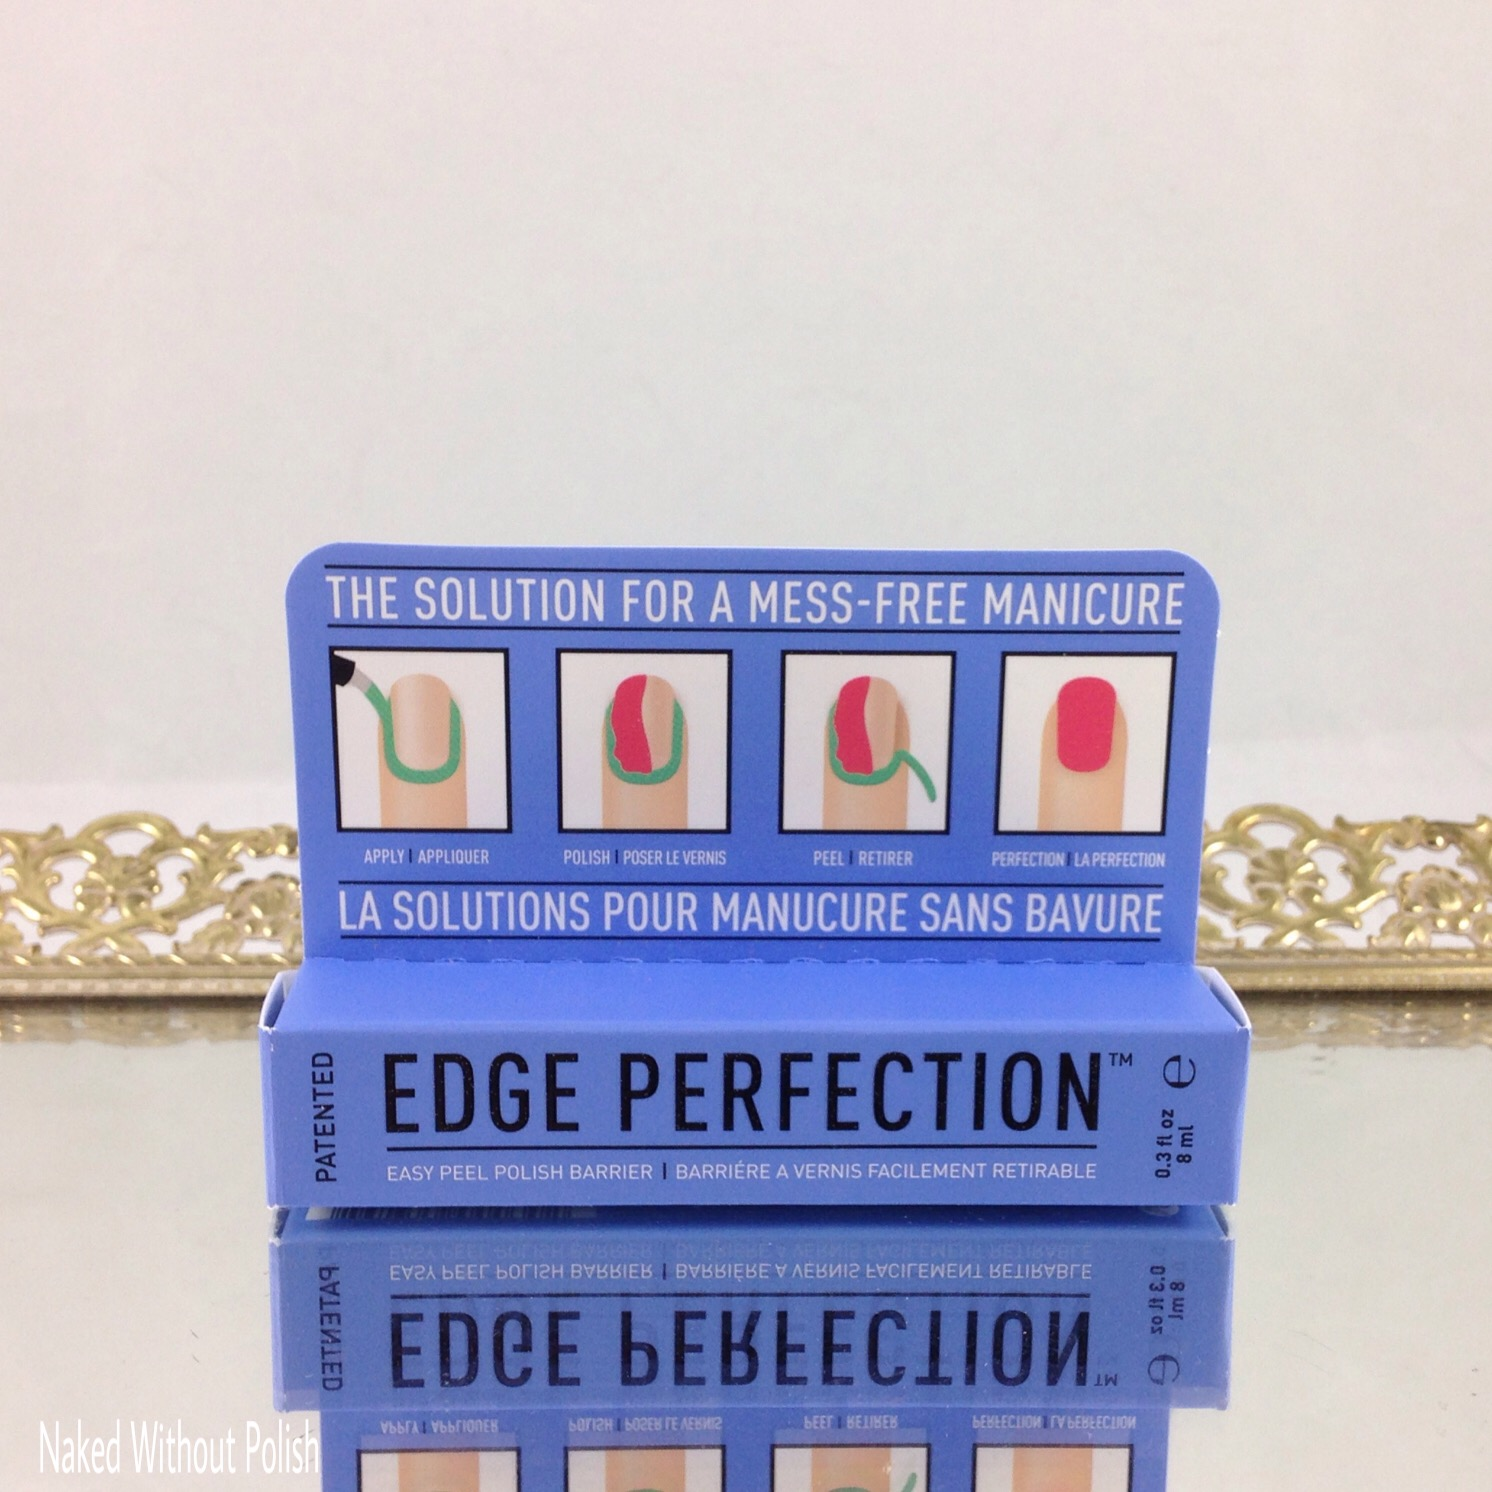 Edge-Perfection-1